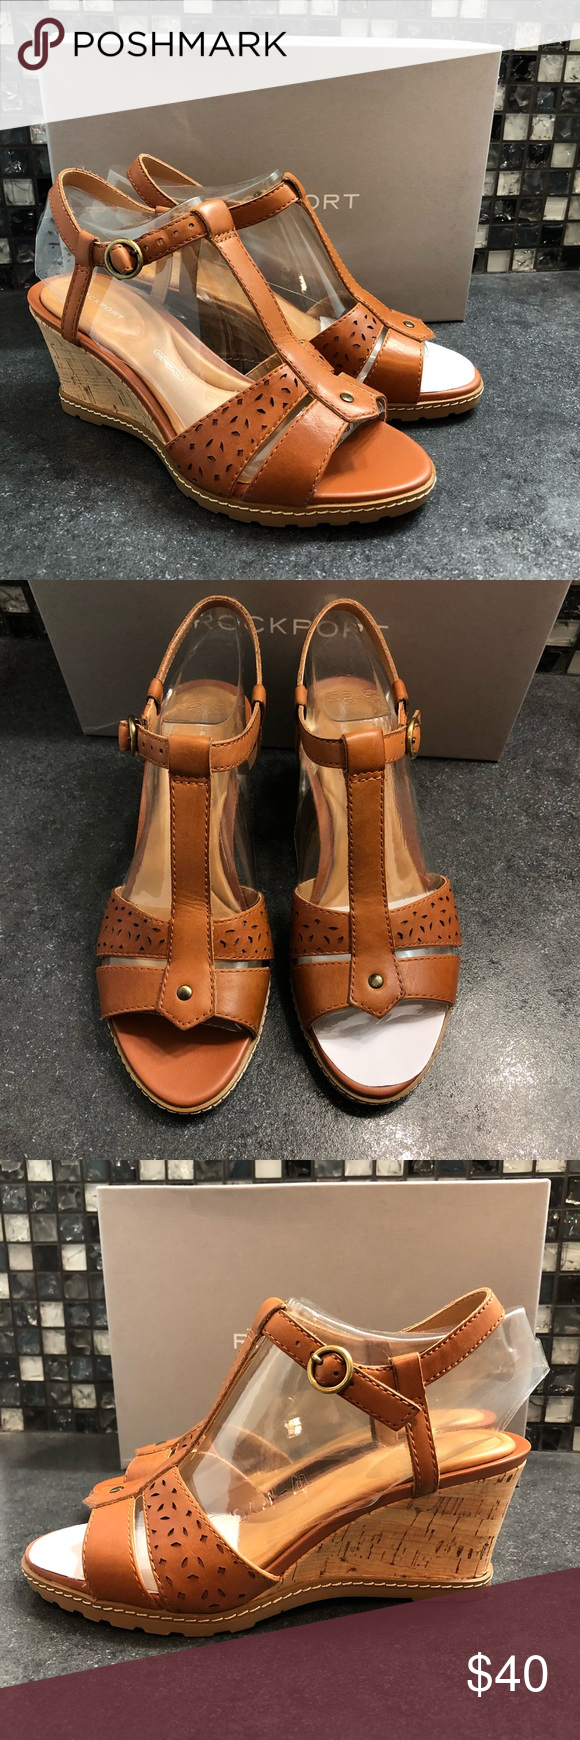 Rockport garden court perf t strap wedges NWT | Rockport shoes ...